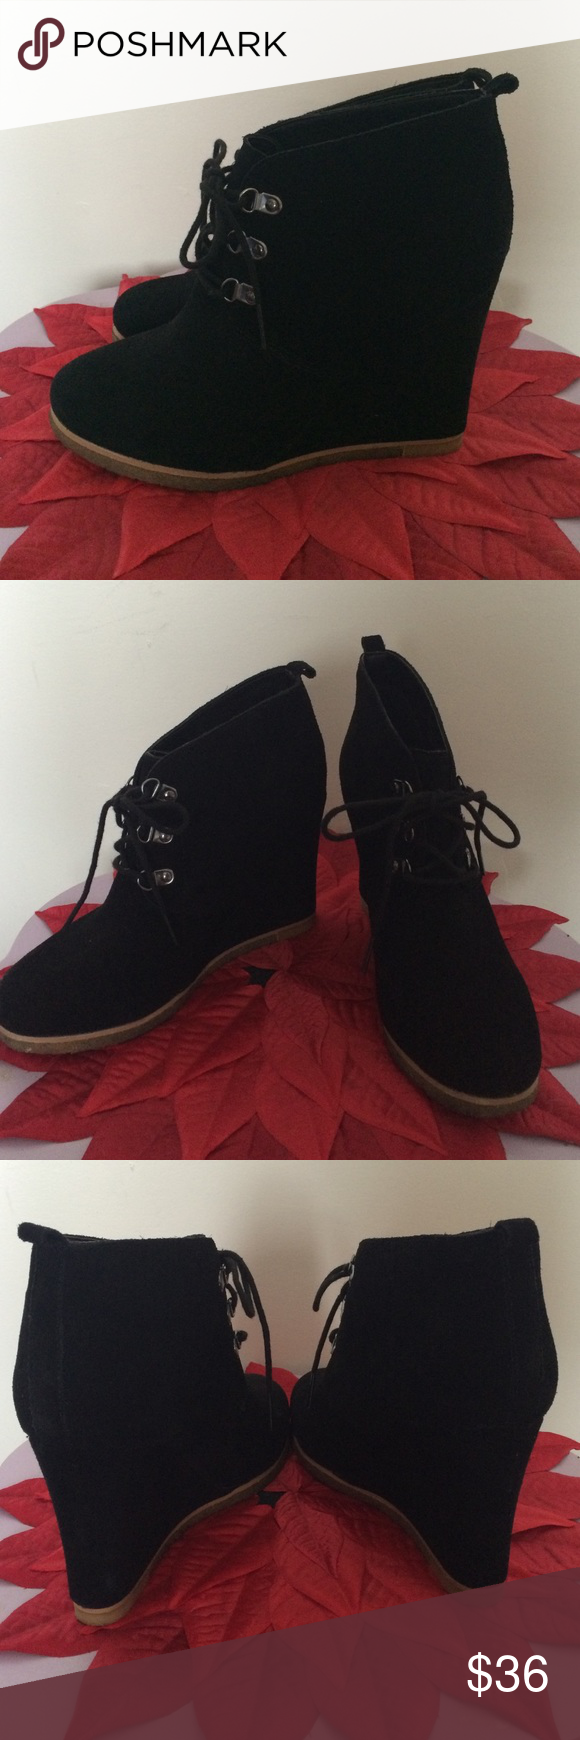 Steve Madden booties All black Steve Madden wedge booties. They have three loops for the short laces. They were a gift an I only wore them twice because they were too big. Steve Madden Shoes Wedges